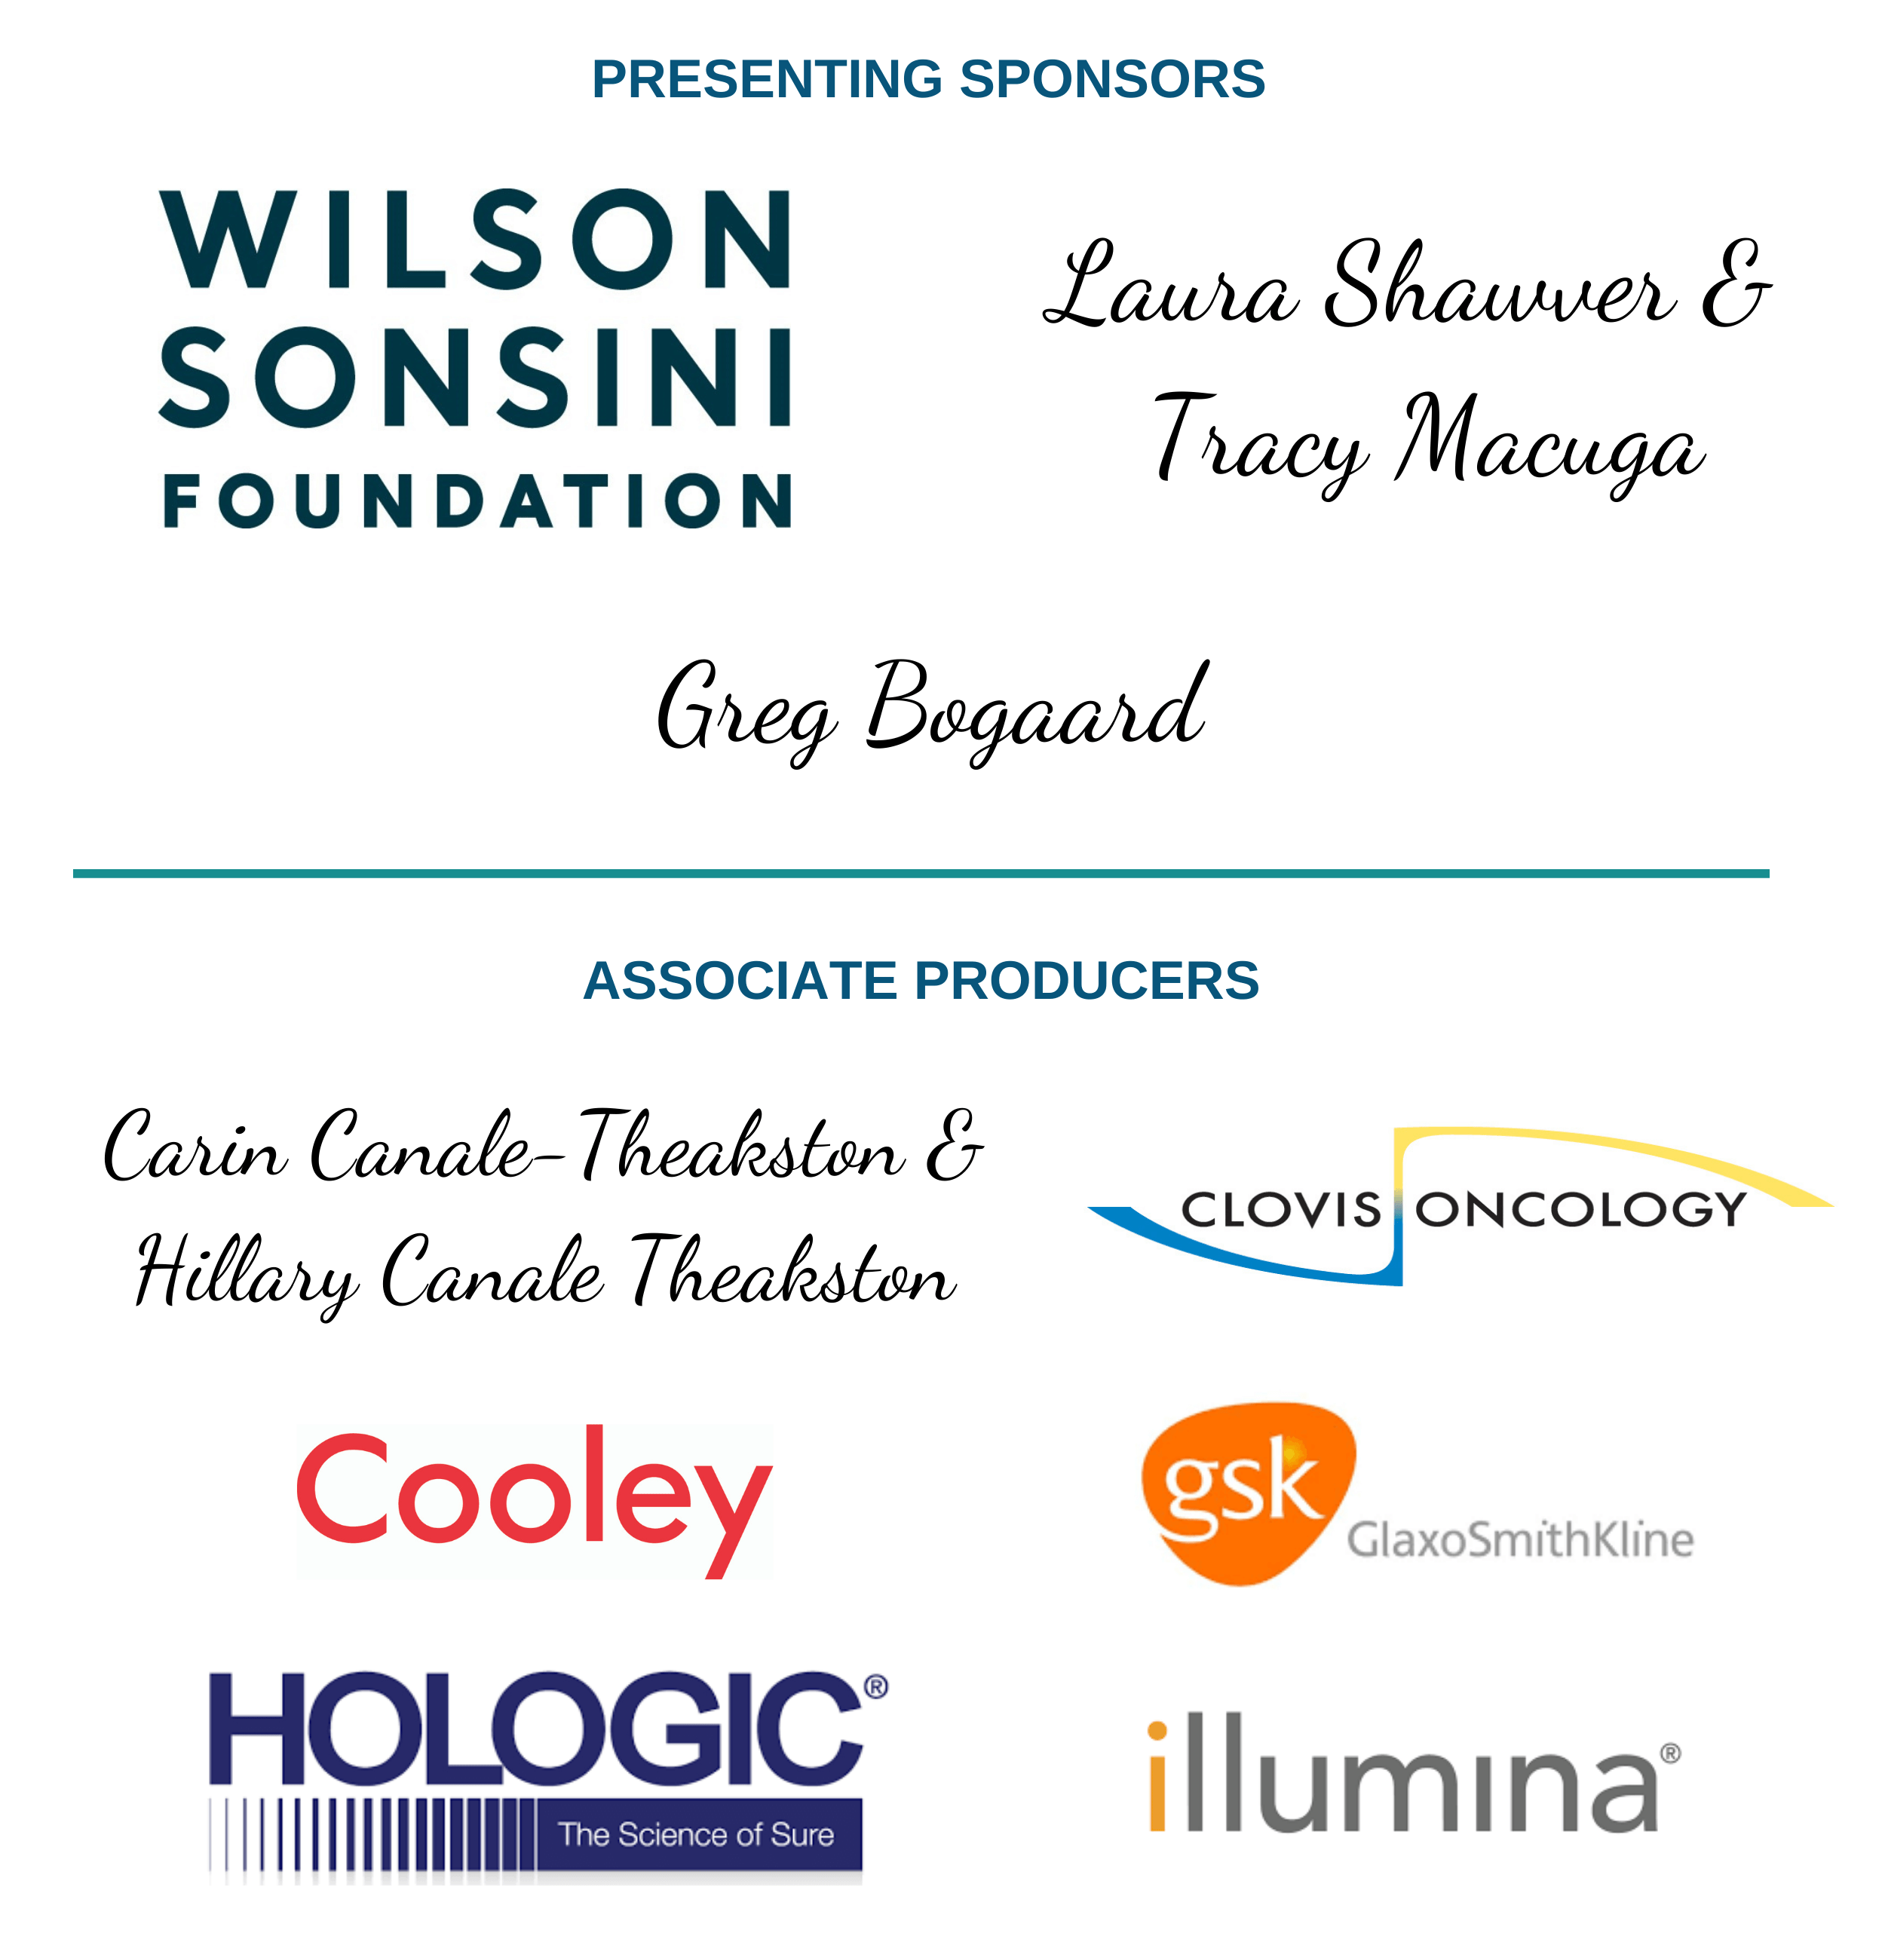 2021 Presenting Sponsors and Associate Producers